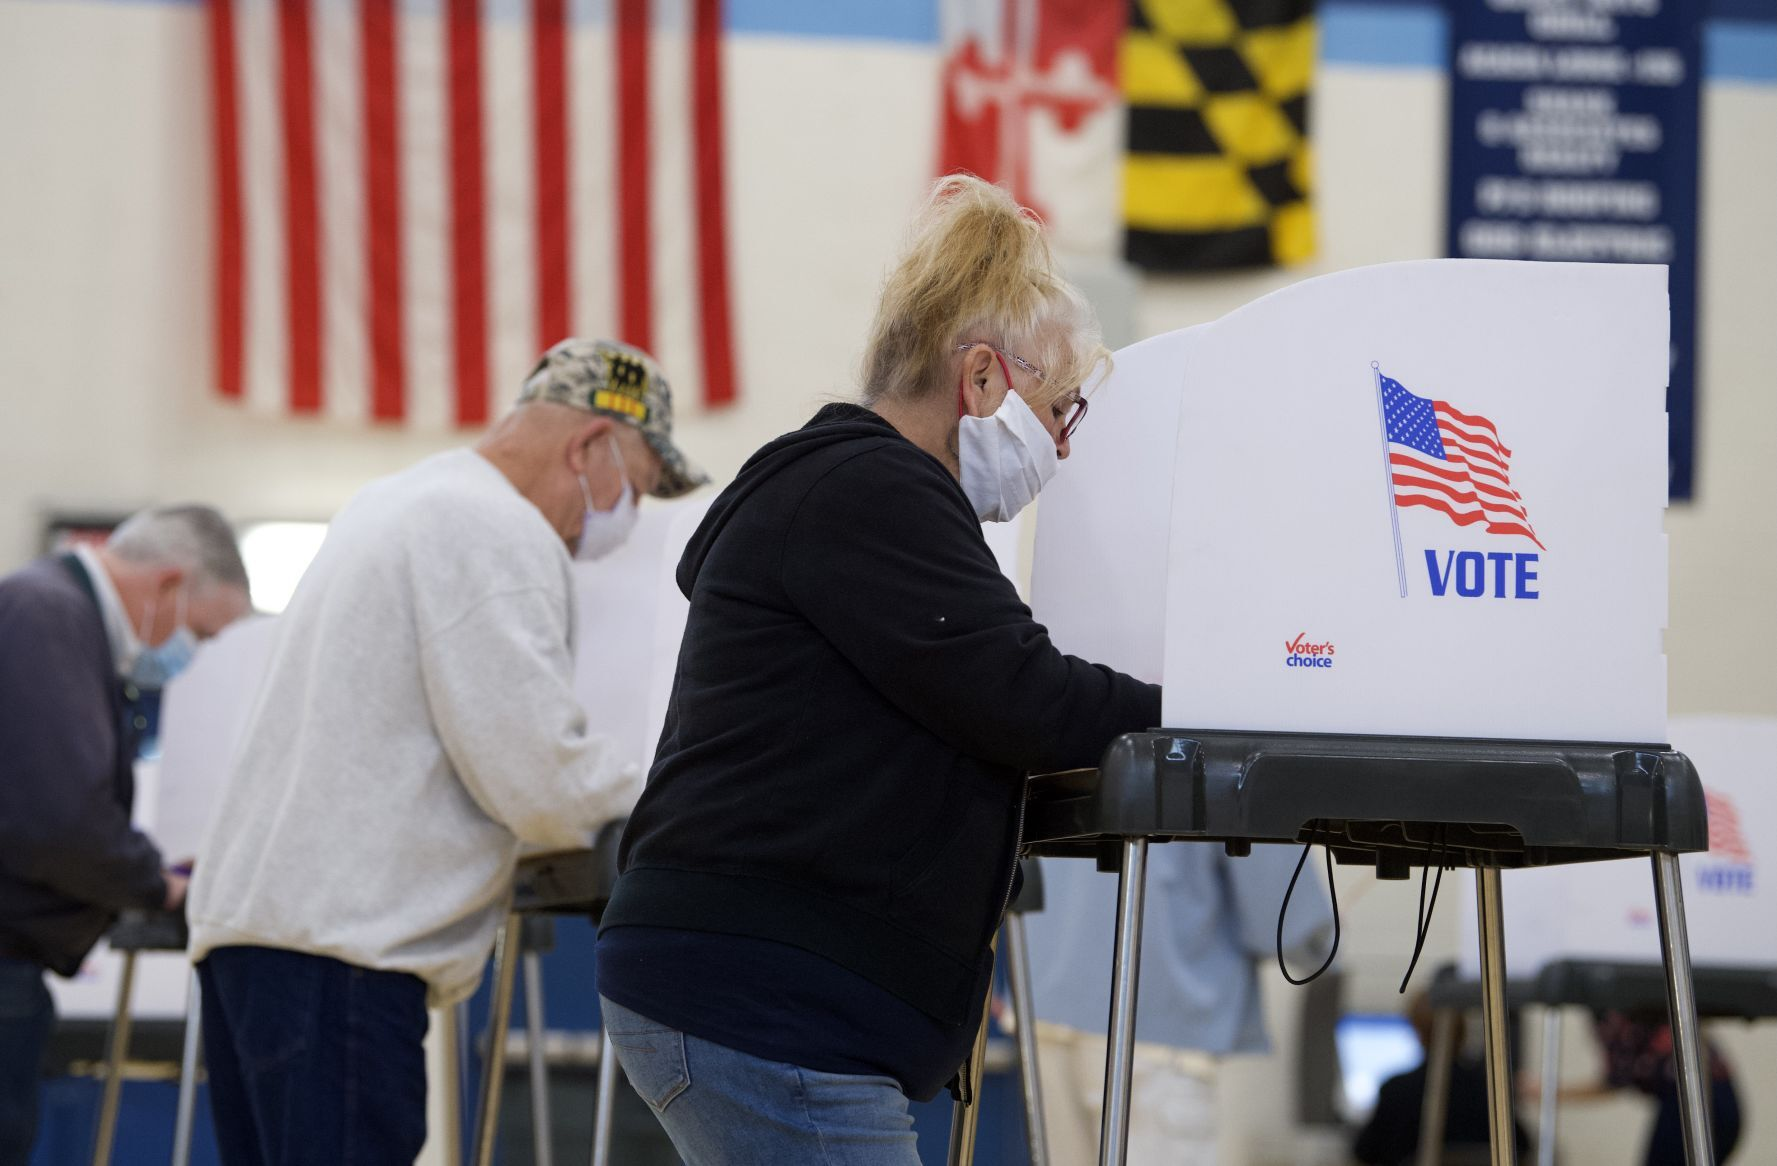 Turnout high as early voting begins in Frederick County